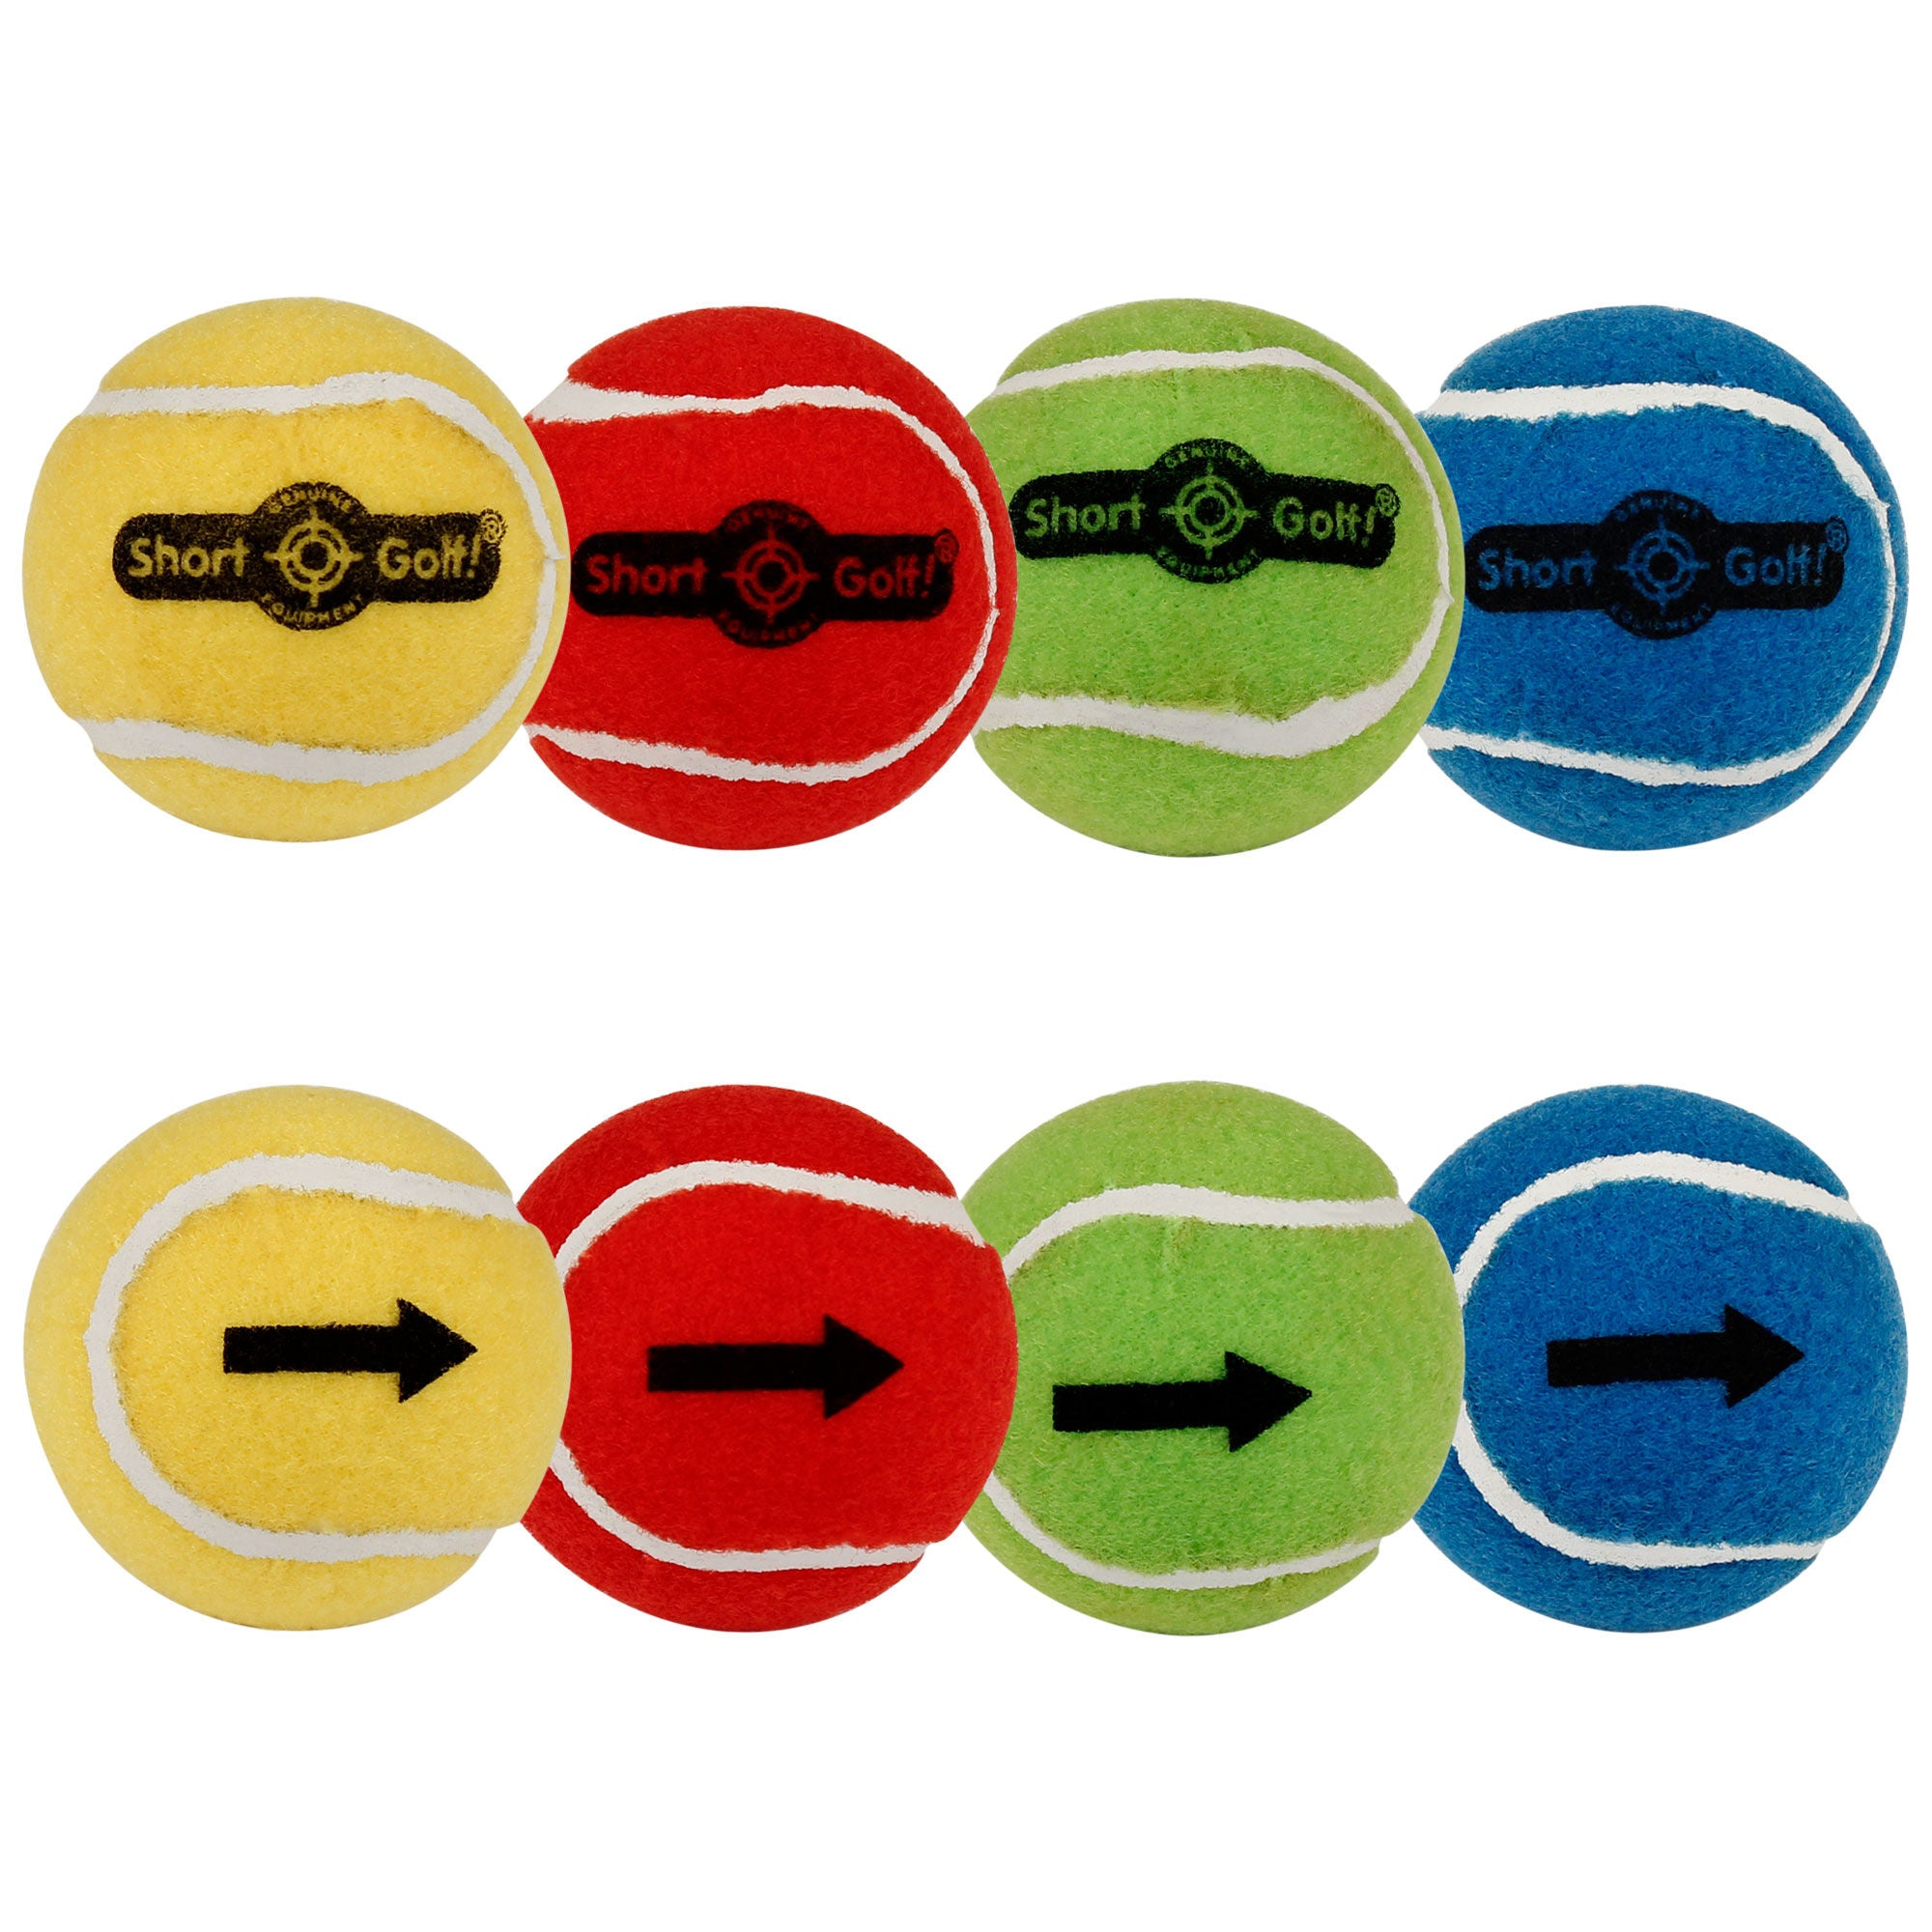 ShortGolf ballz! (pack of 8) - Event Stuff Ltd Owns Putterfingers.com!